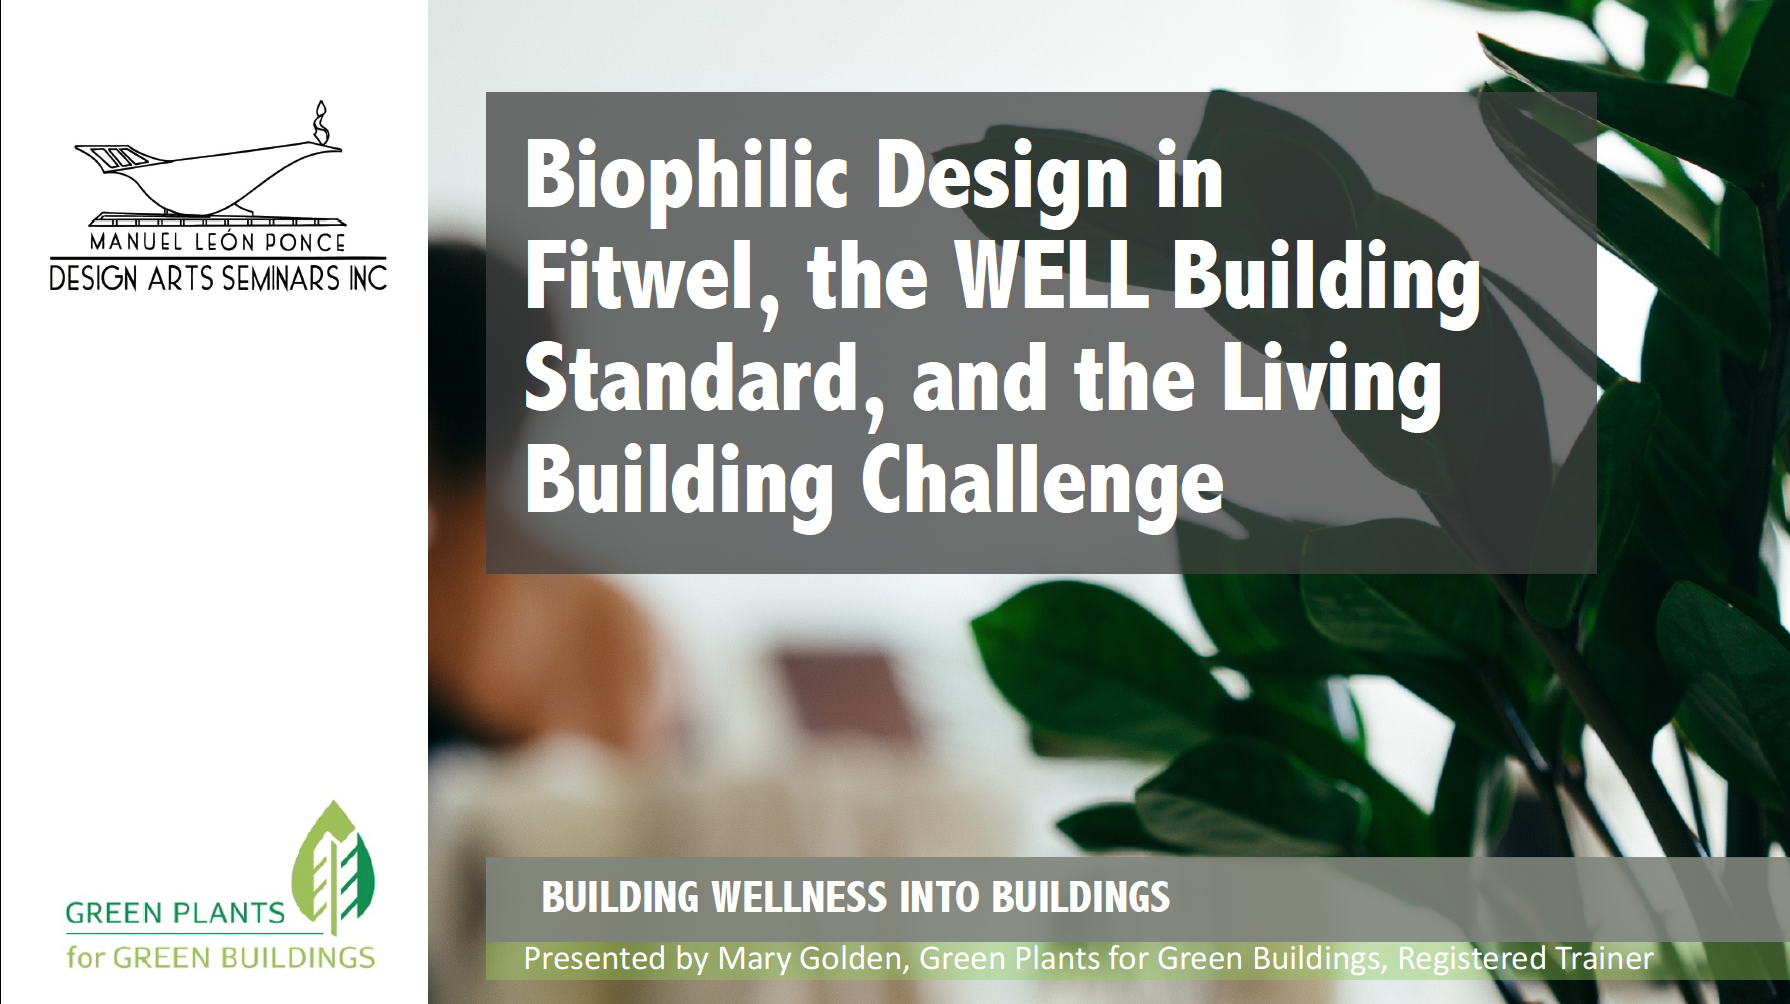 Building Wellness Into Buildings